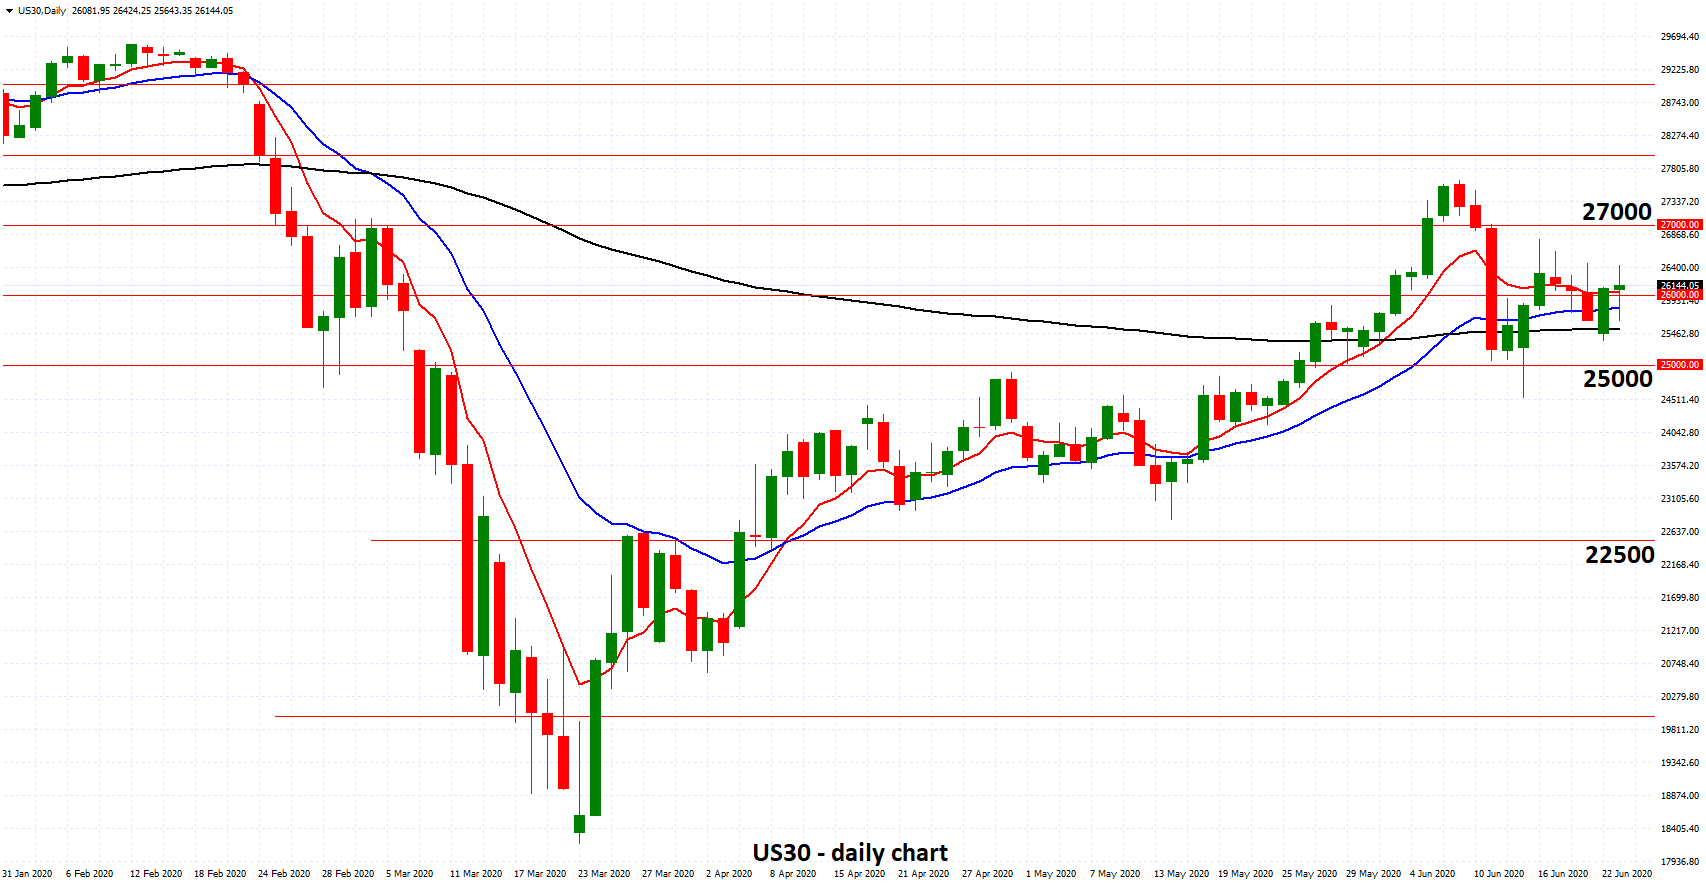 US30 - Trades Around 26000 as Fed Sees Slow Growth for Economy